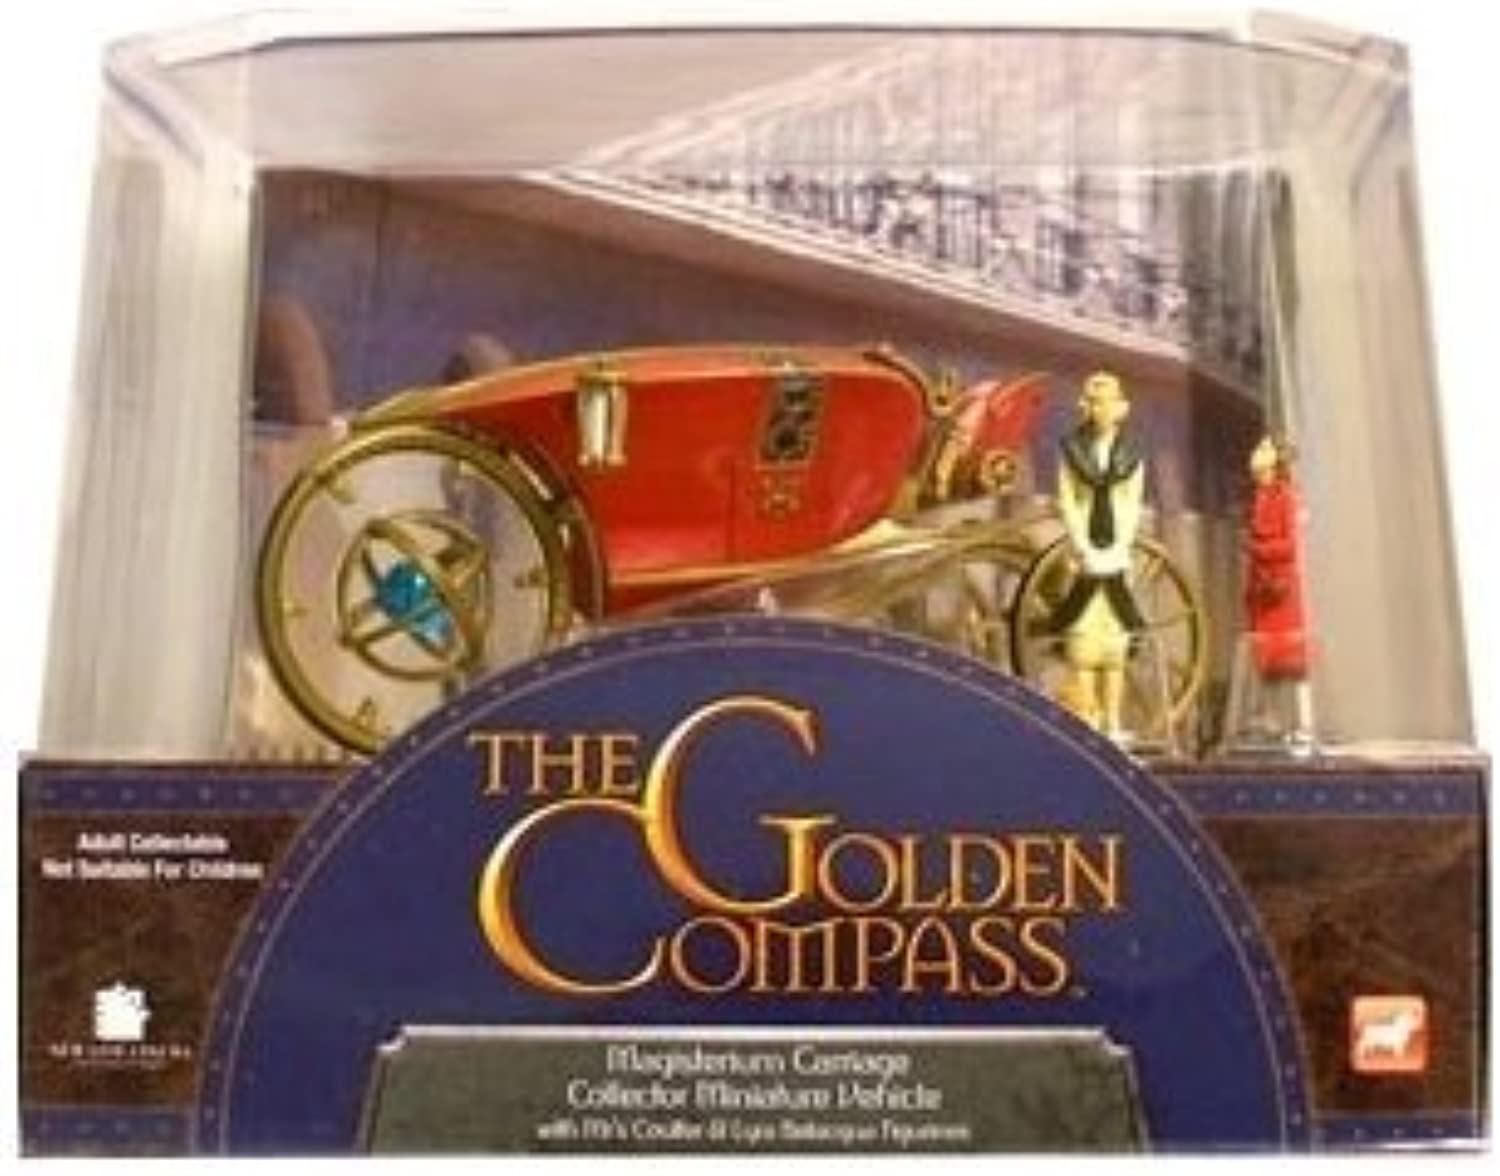 The golden Compass Magisterium Carriage Collector Miniature Vehicle by The golden Compass